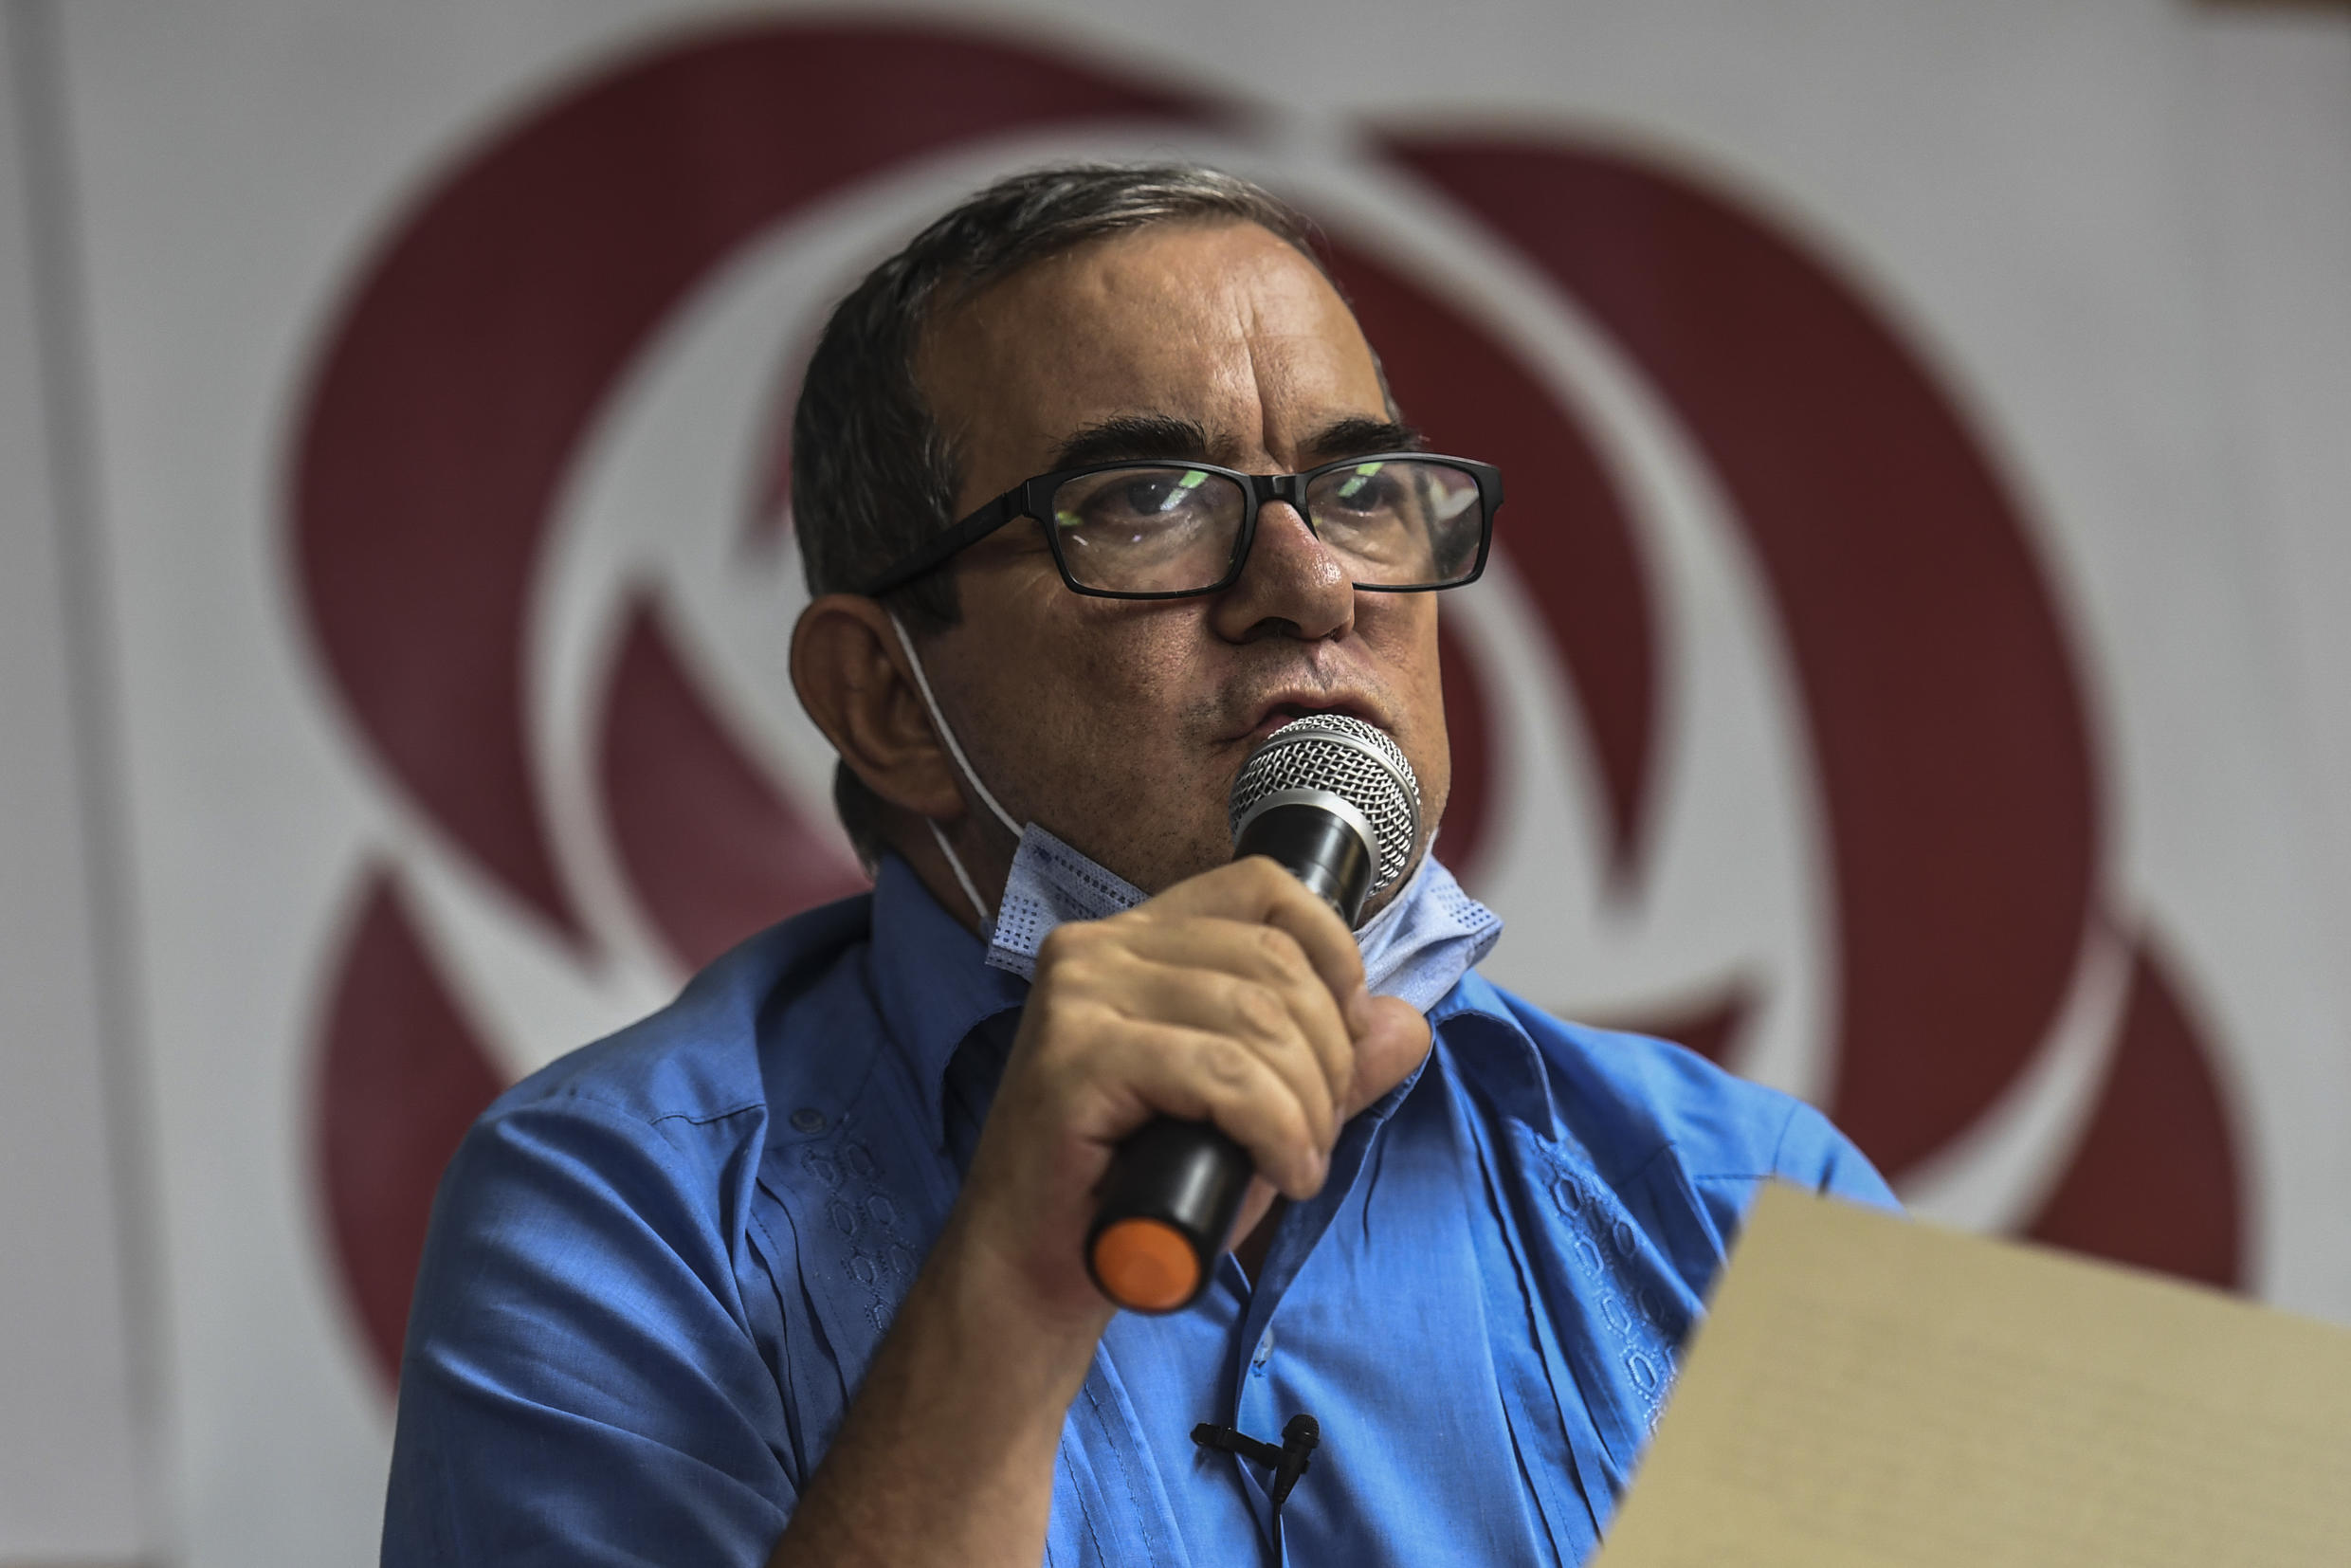 Head of Colombia's Common People's Party, Rodrigo Londono, pictured on January 24, 2021, was among the eight high-ranking members of Colombia's now-defunct FARC guerilla movement charged with war crimes